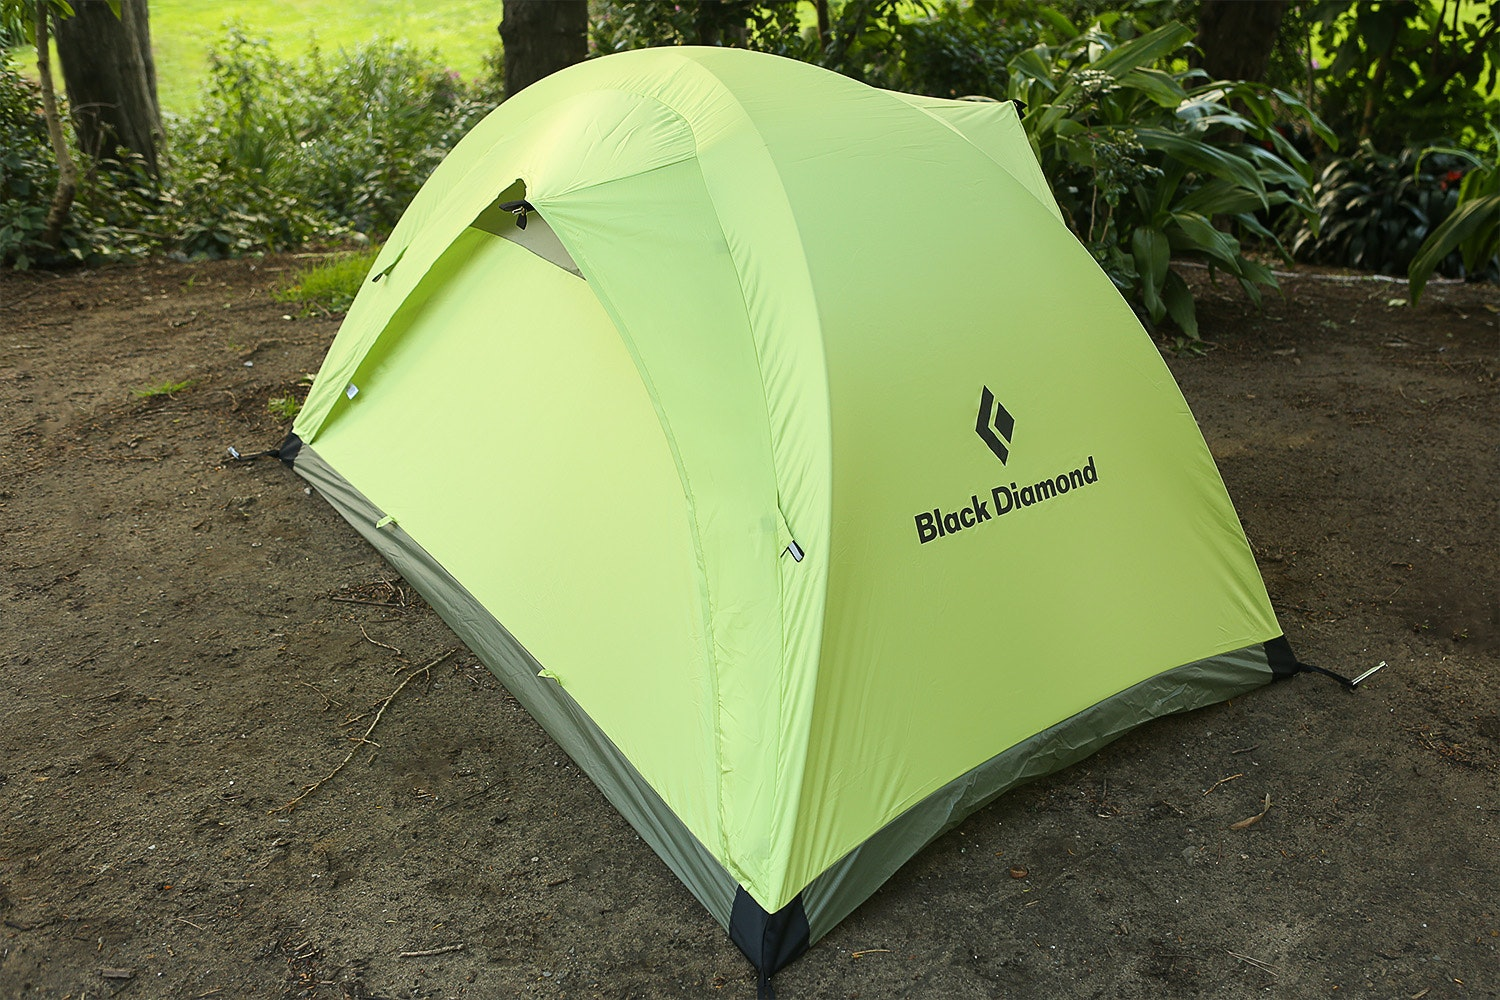 Not for me but this might appeal to some Massdrop have Black Diamondu0027s HiLight Tent as a drop ... looking at AU$391 or thereabouts for a four season ... & This tent is made for camping... - Page 18 - Australian Cycling ...